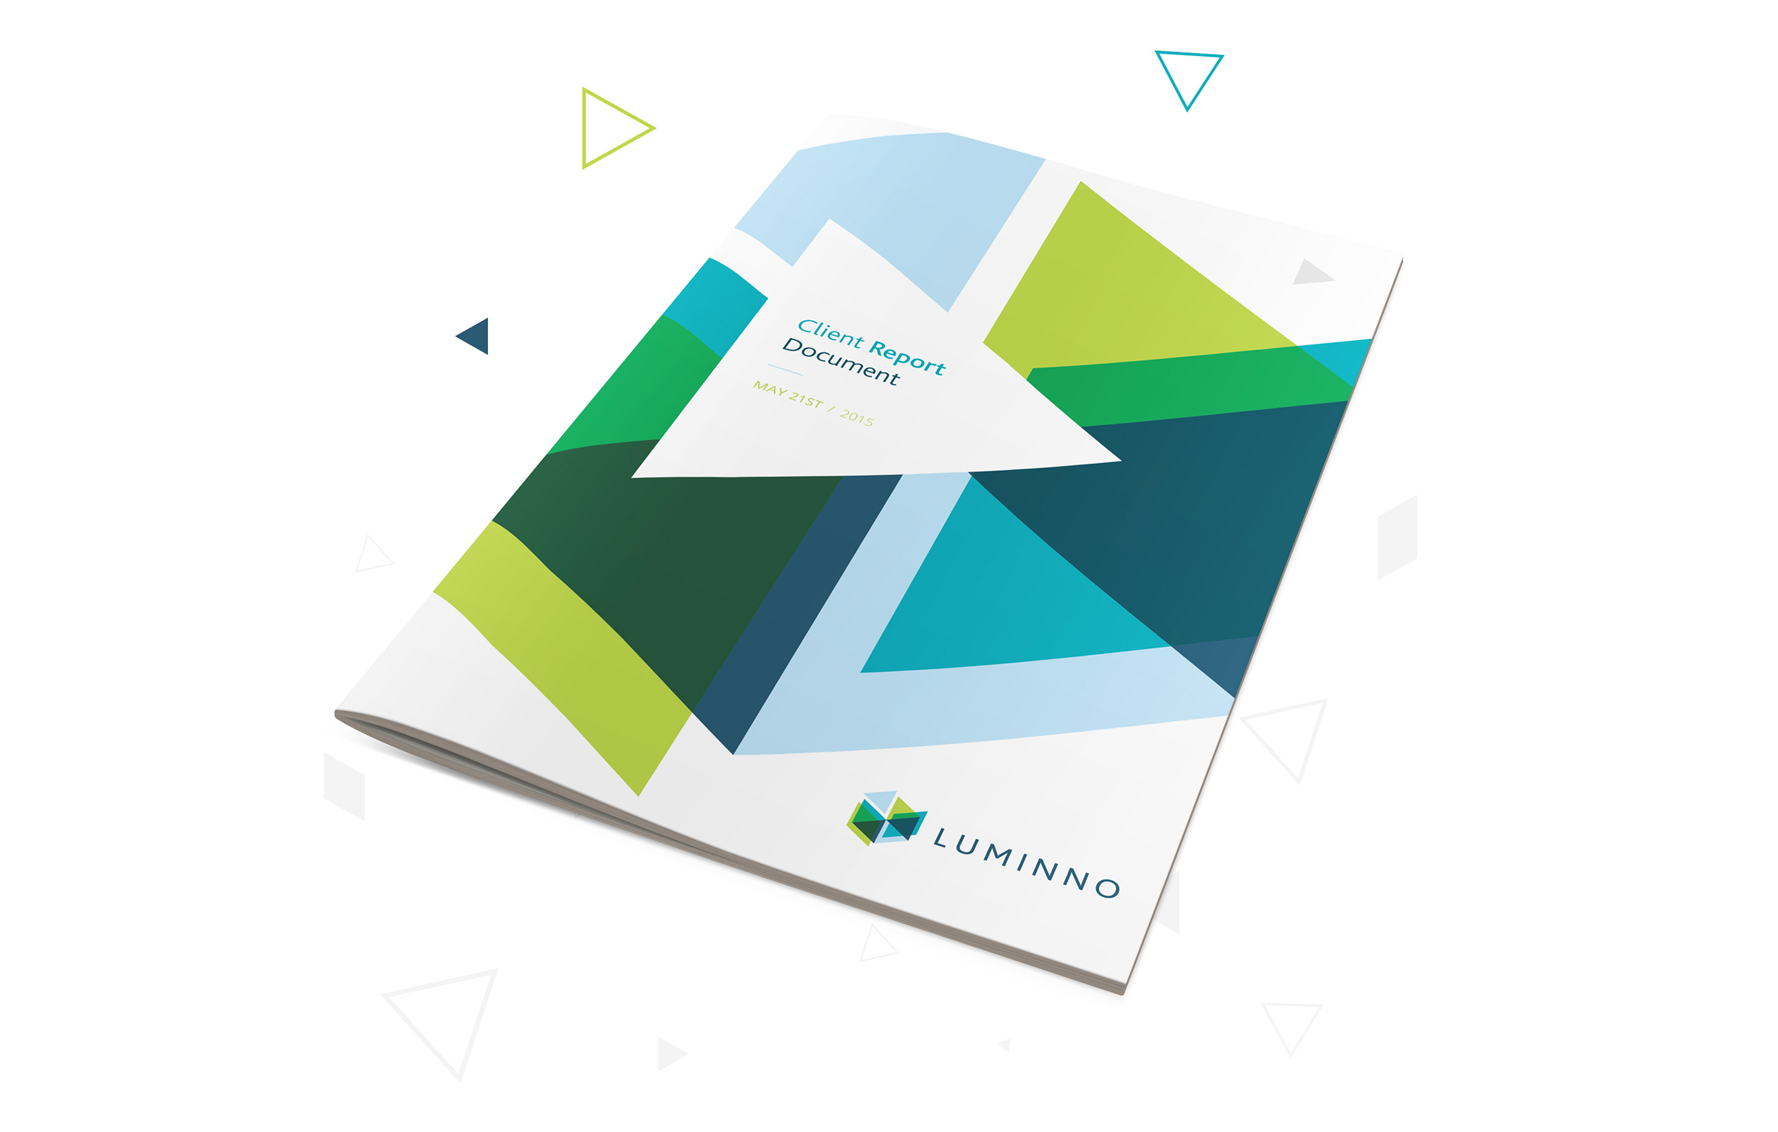 luminno client report printed document